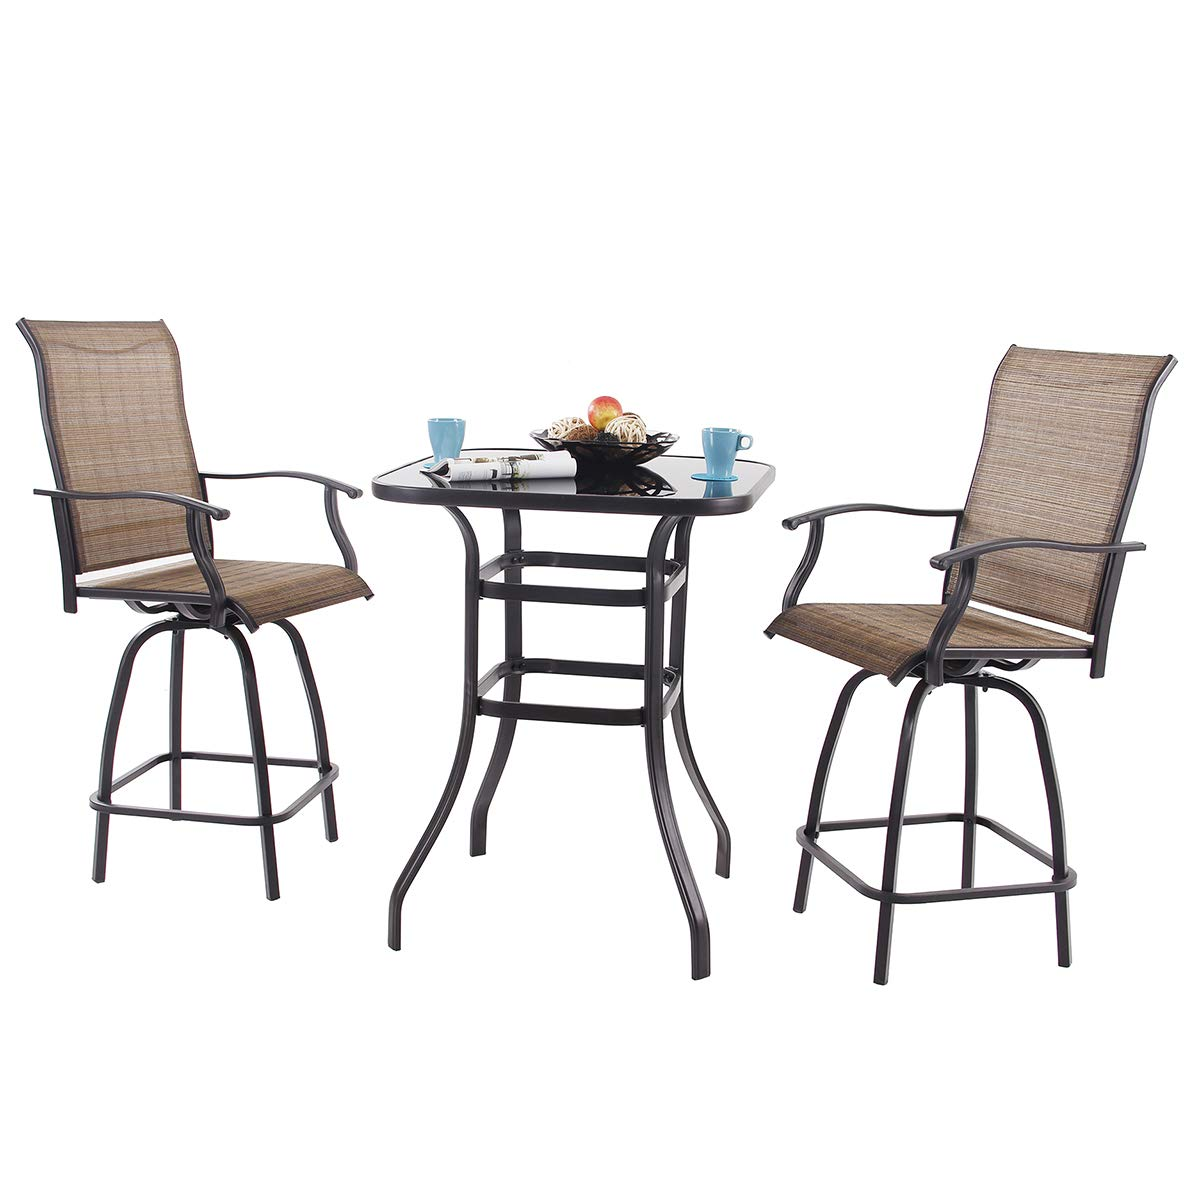 PHI VILLA 3 PC Swivel Bar Stools Set Bar Height Bistro Sets Outdoor, 2 Chairs and 1 Table